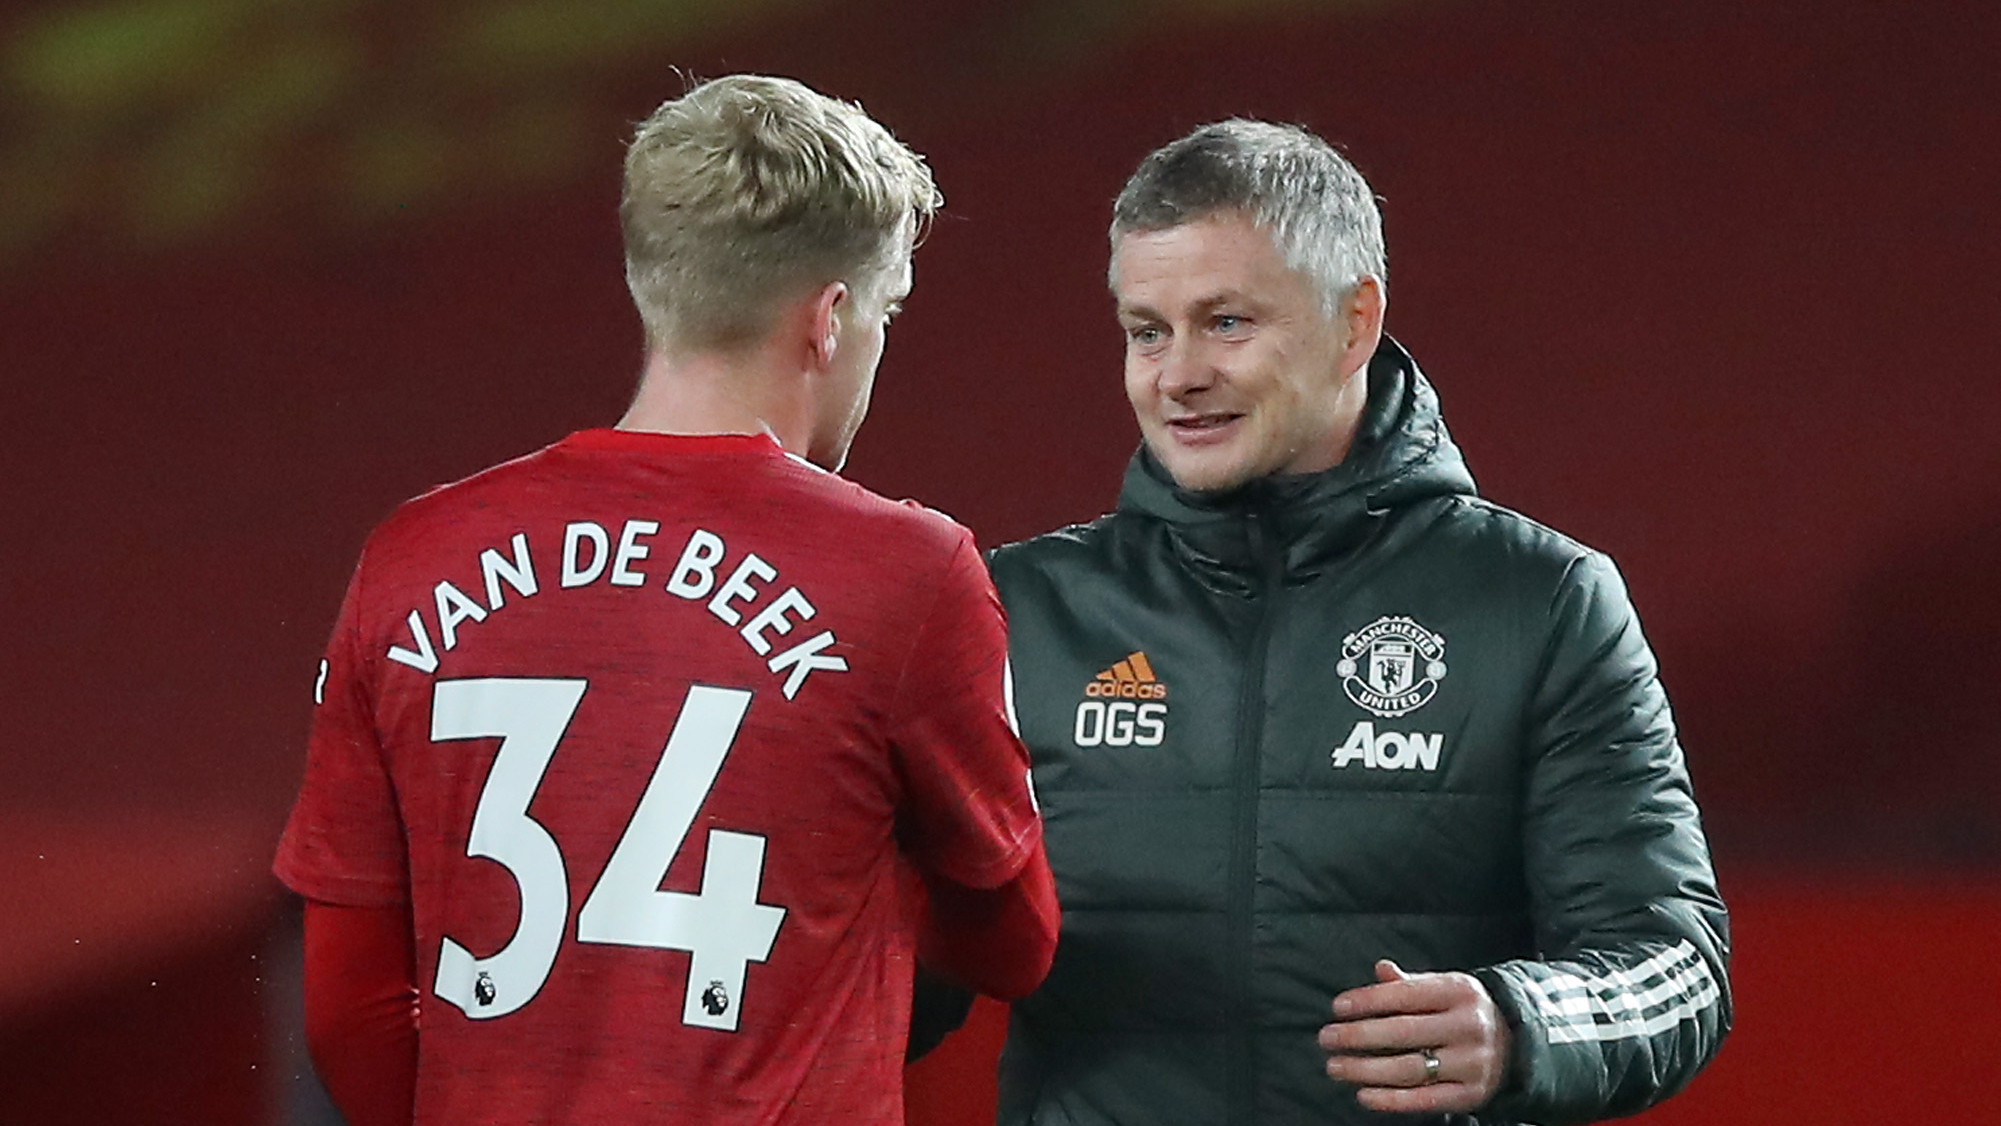 Cavani and Van de Beek adapting to Man Utd style – Solskjaer